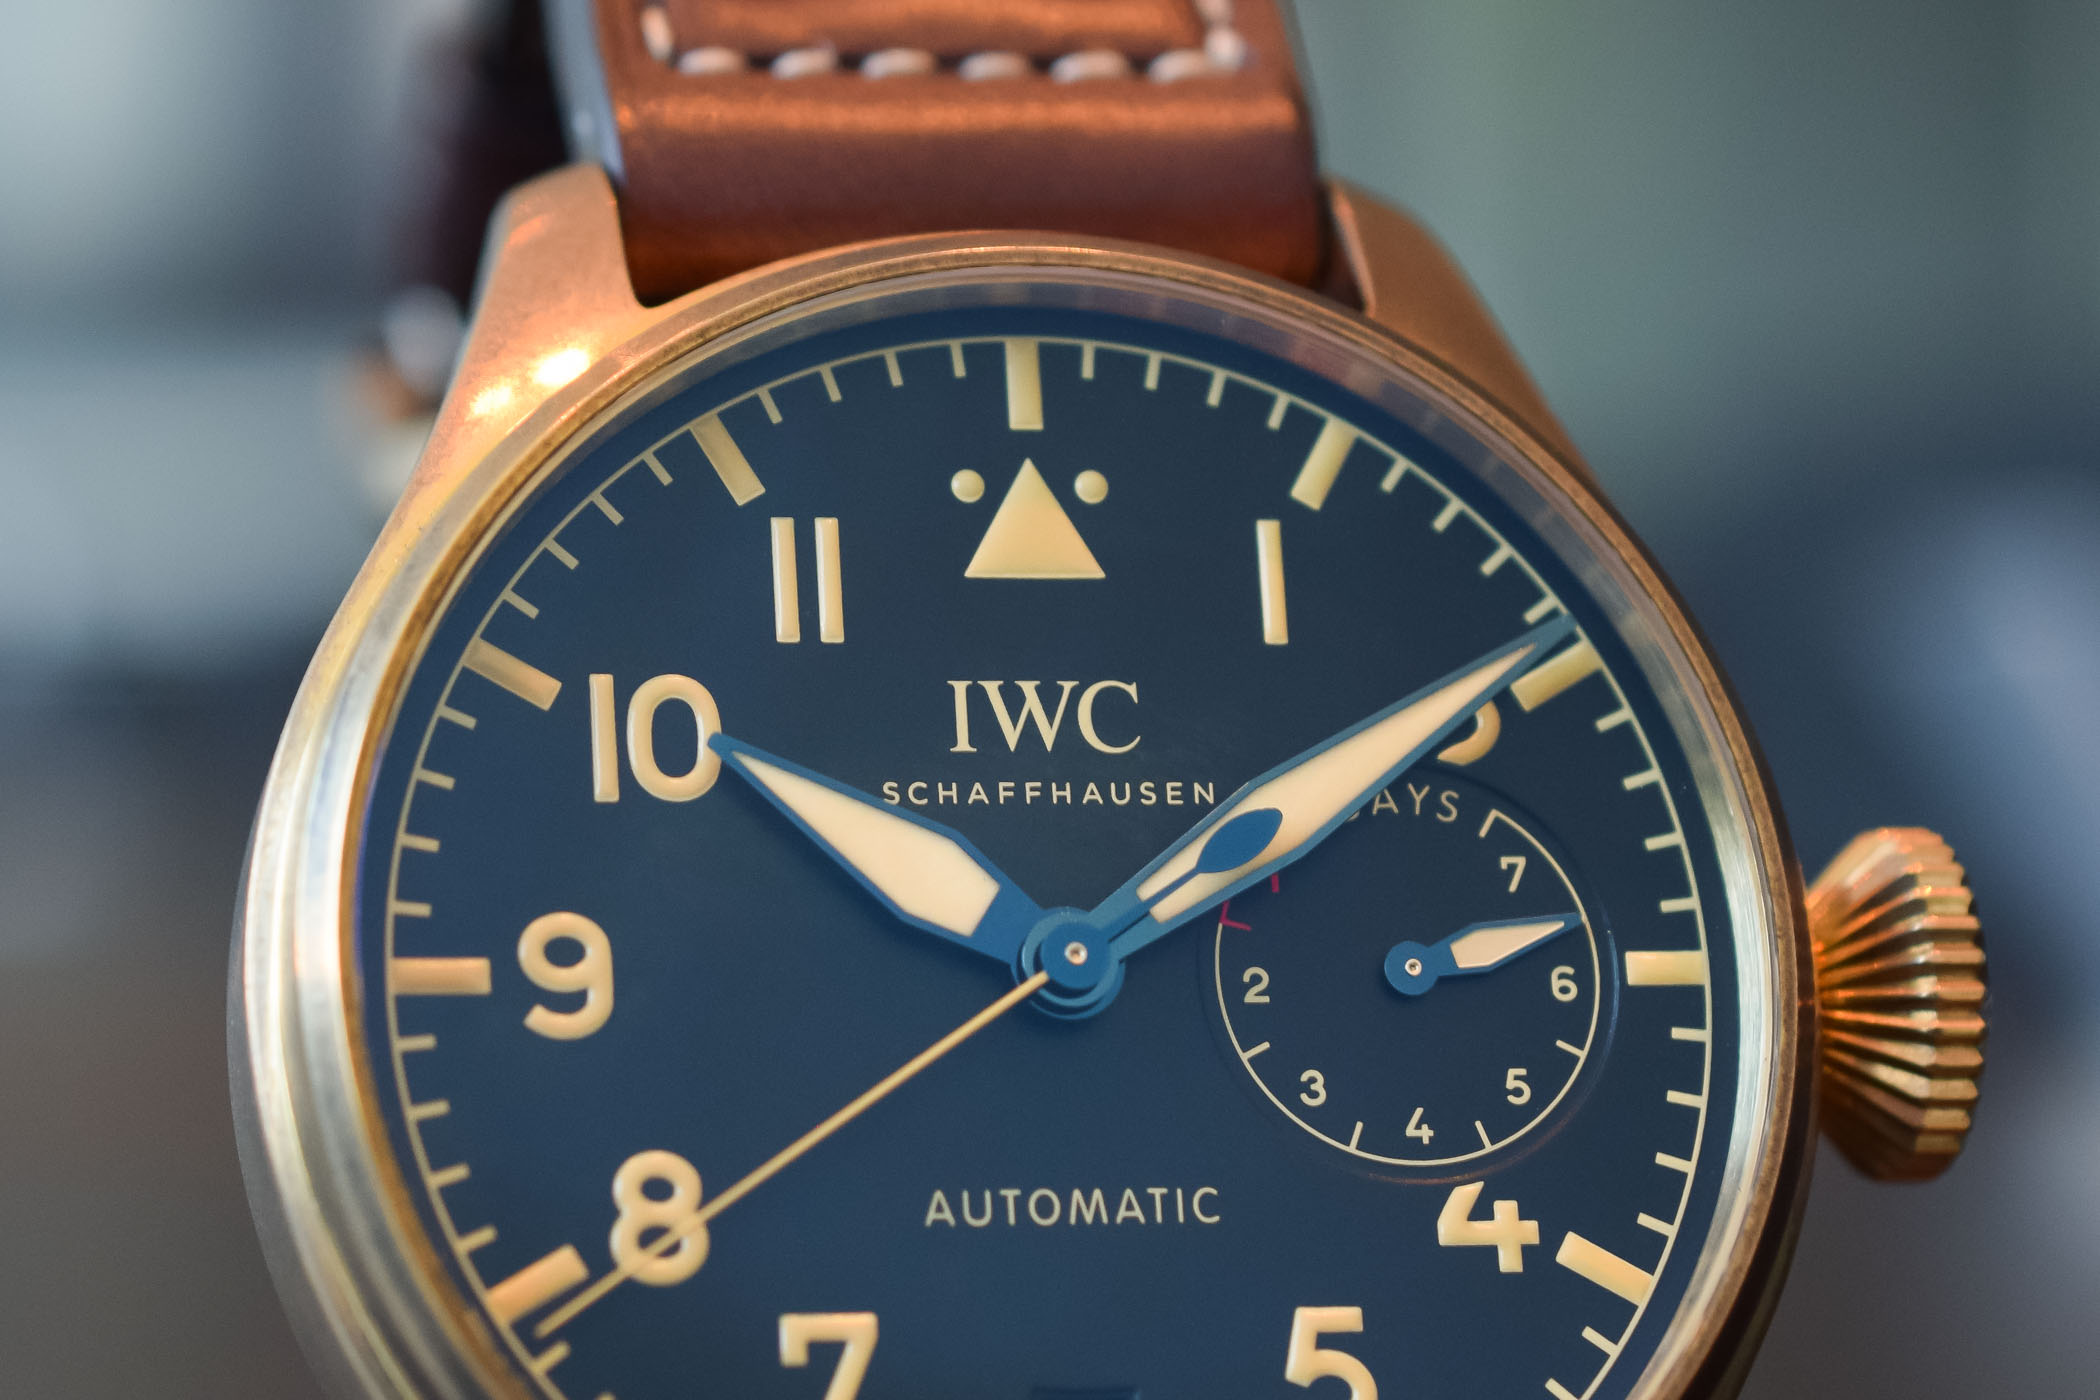 iwc-triangle-marker-pilots-watches.jpg